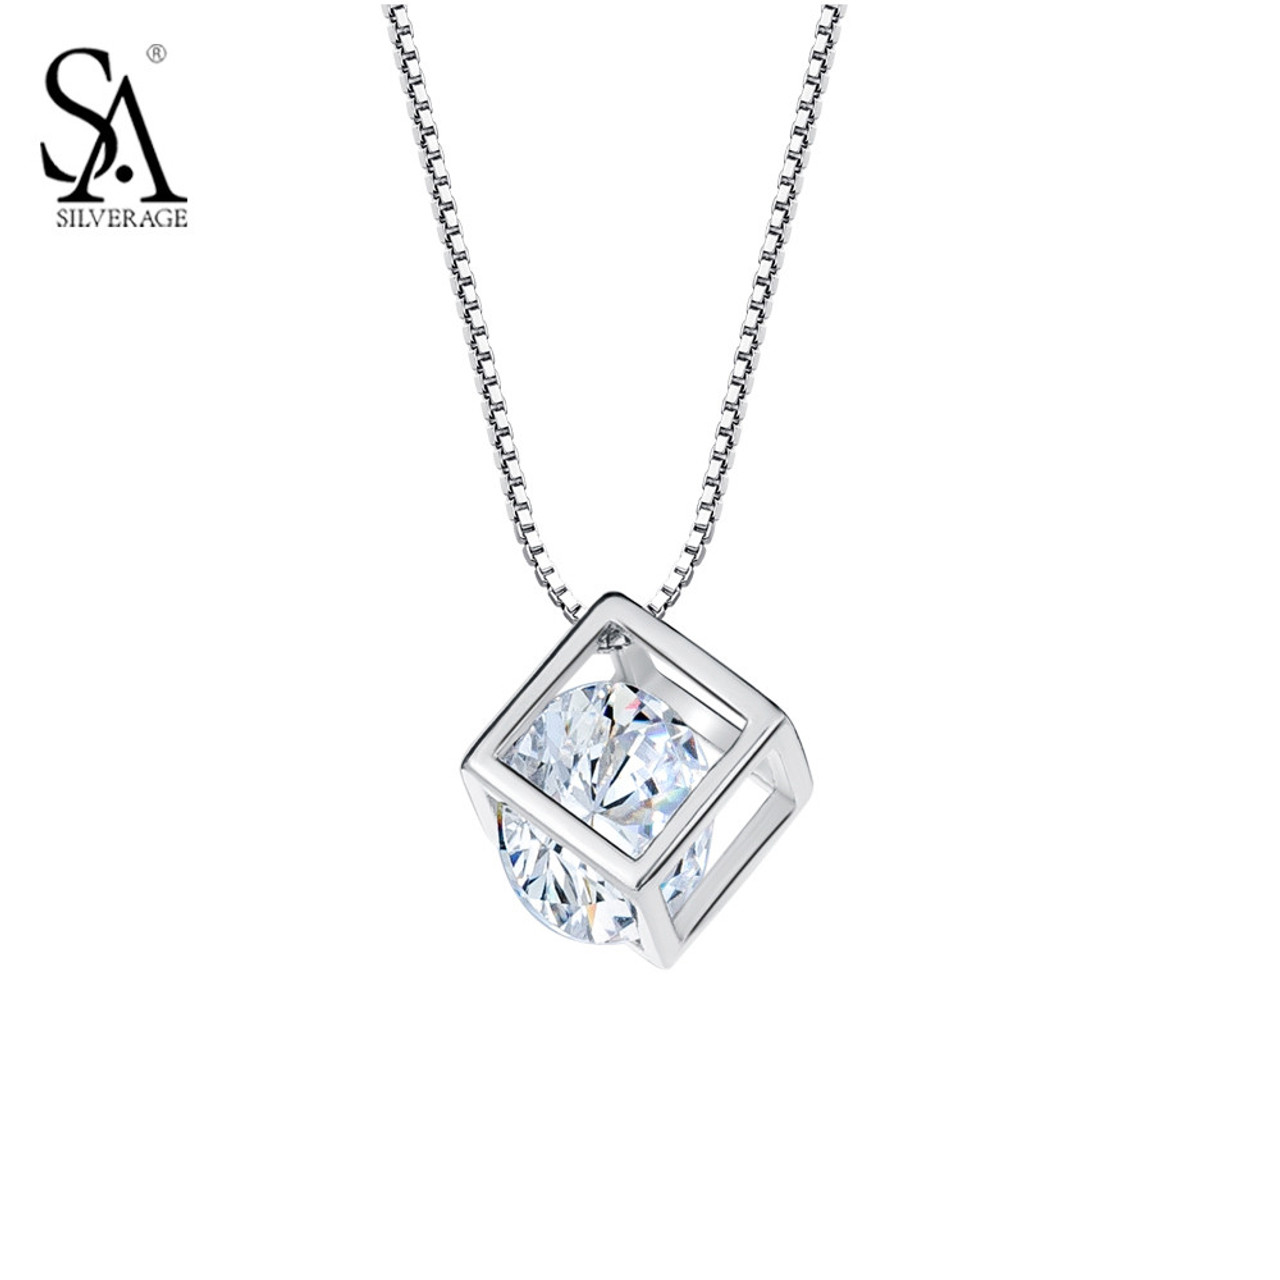 Sa silverage silver pendant cube 925 sterling silver jewelry with sa silverage silver pendant cube 925 sterling silver jewelry with cz women fashion necklaces amp mozeypictures Choice Image